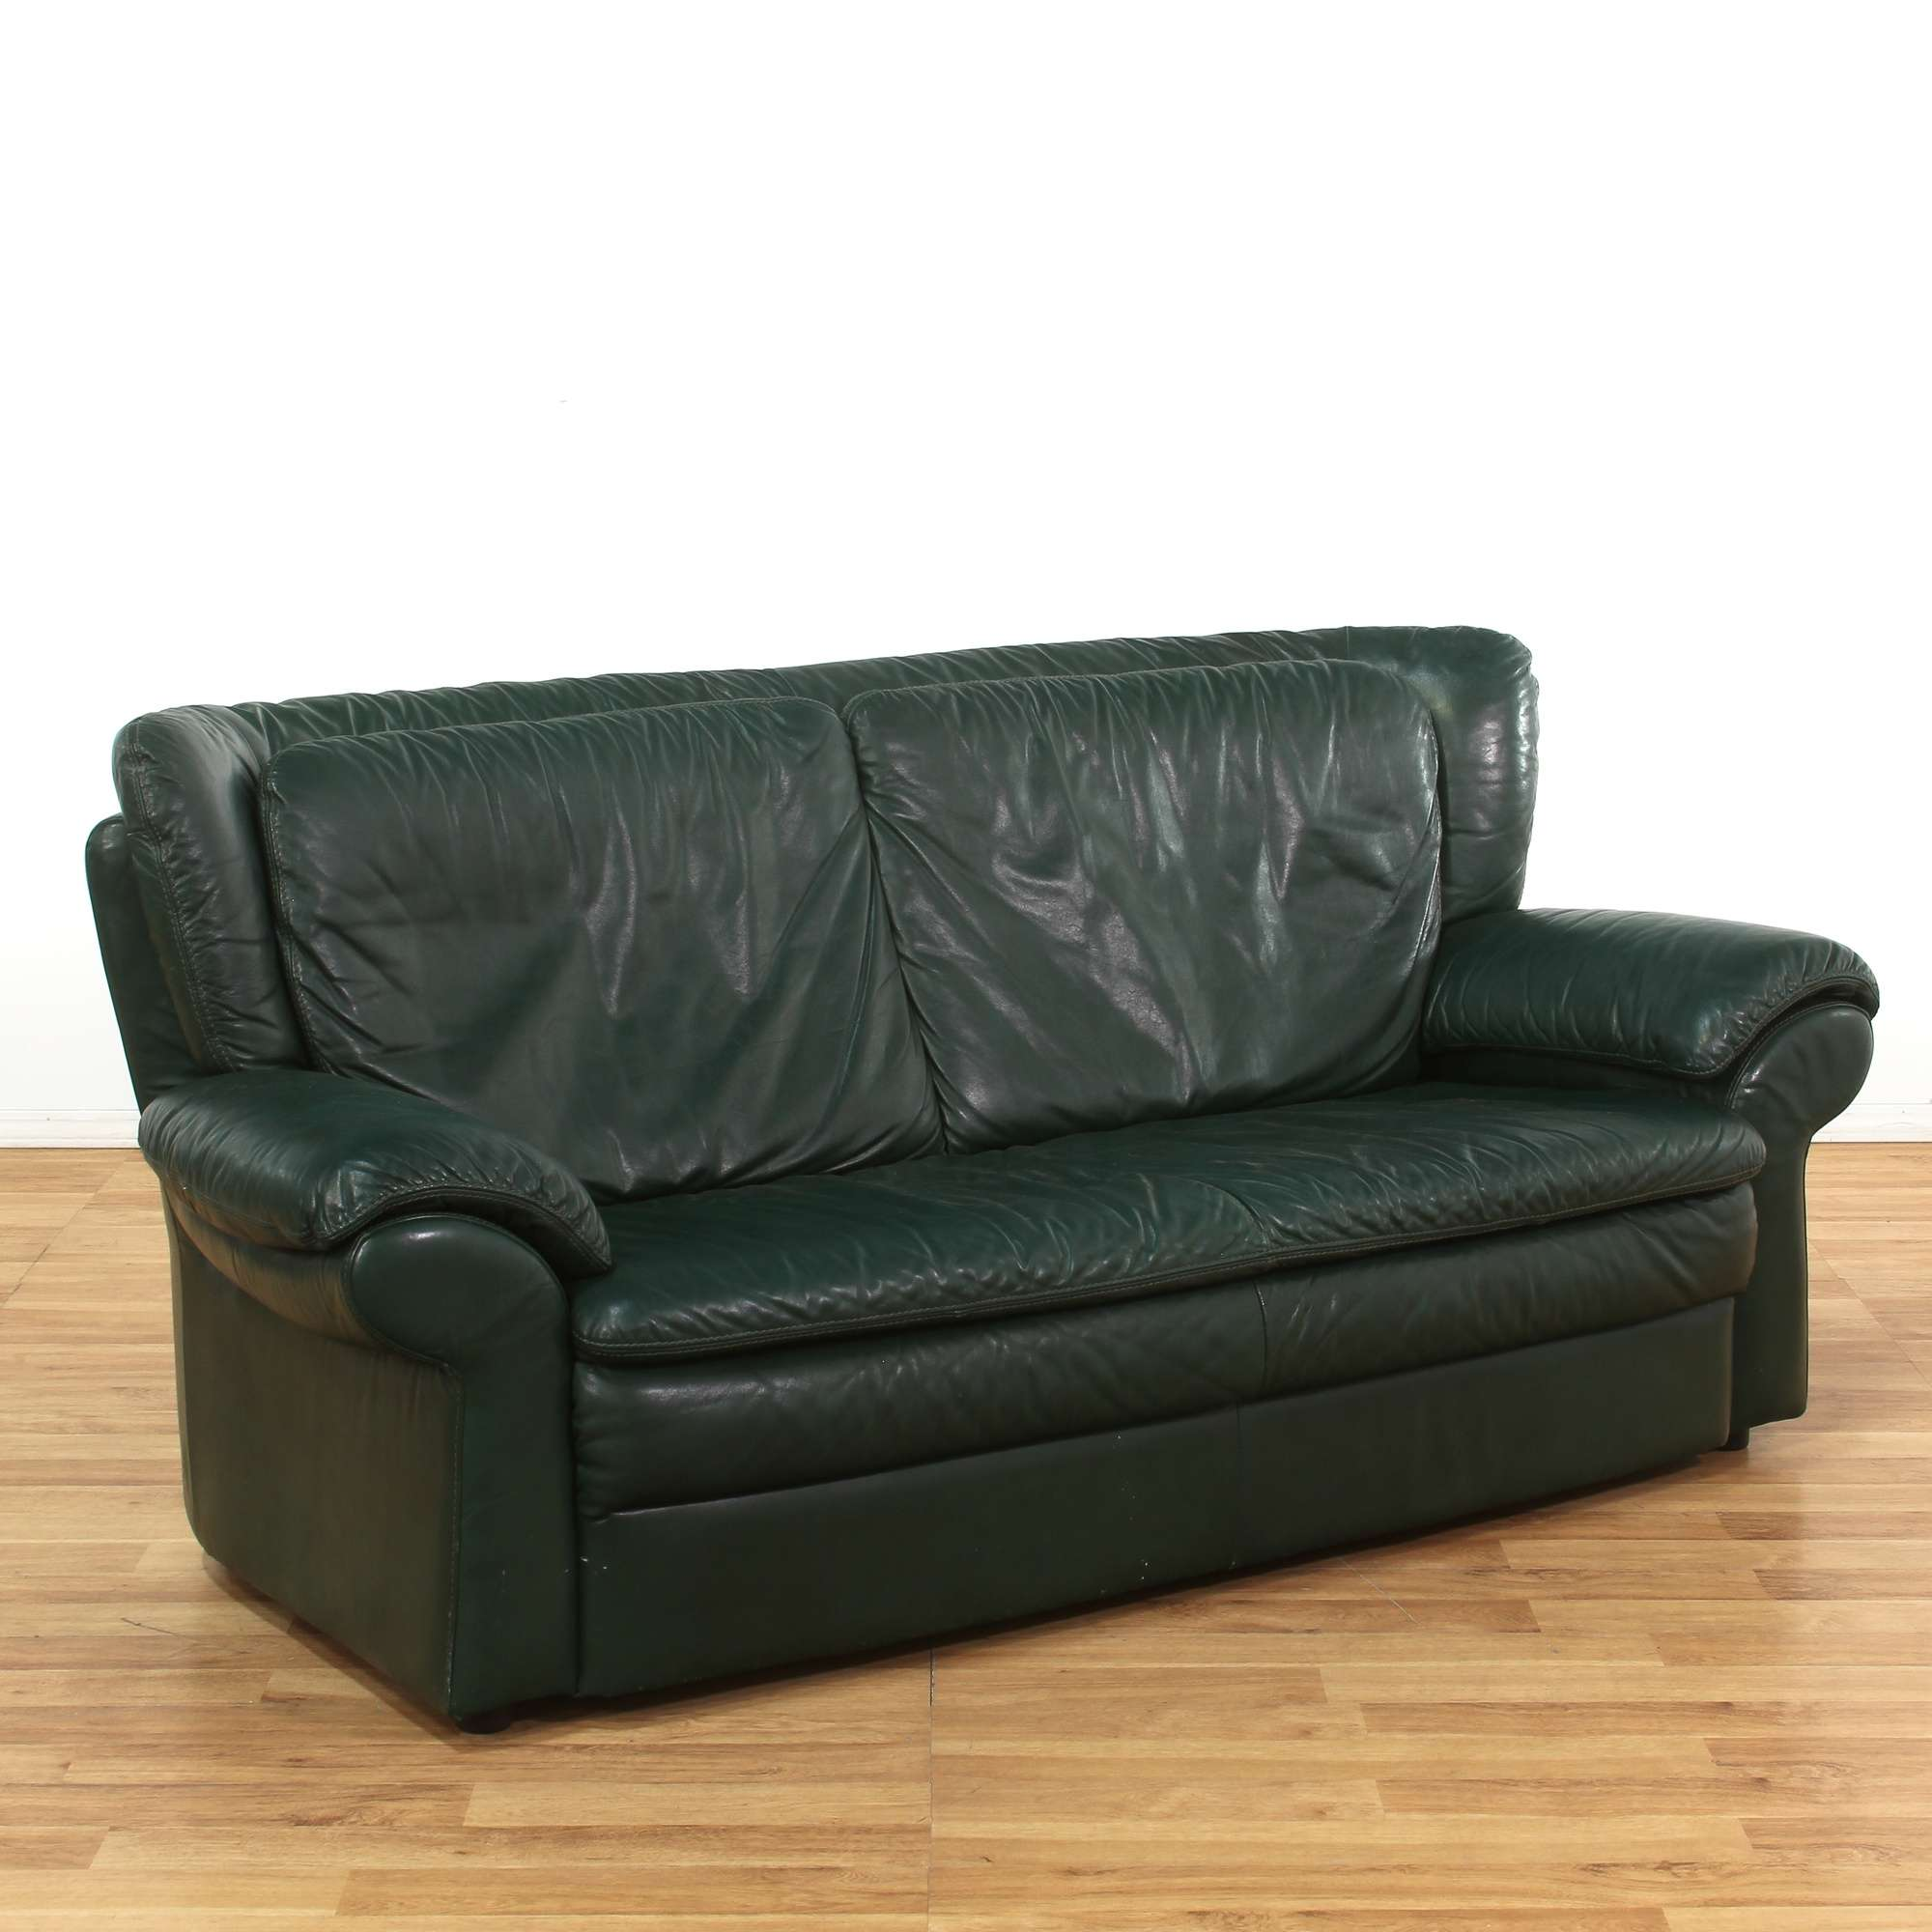 Oversized Dark Green Leather Sofa | Loveseat Vintage ...